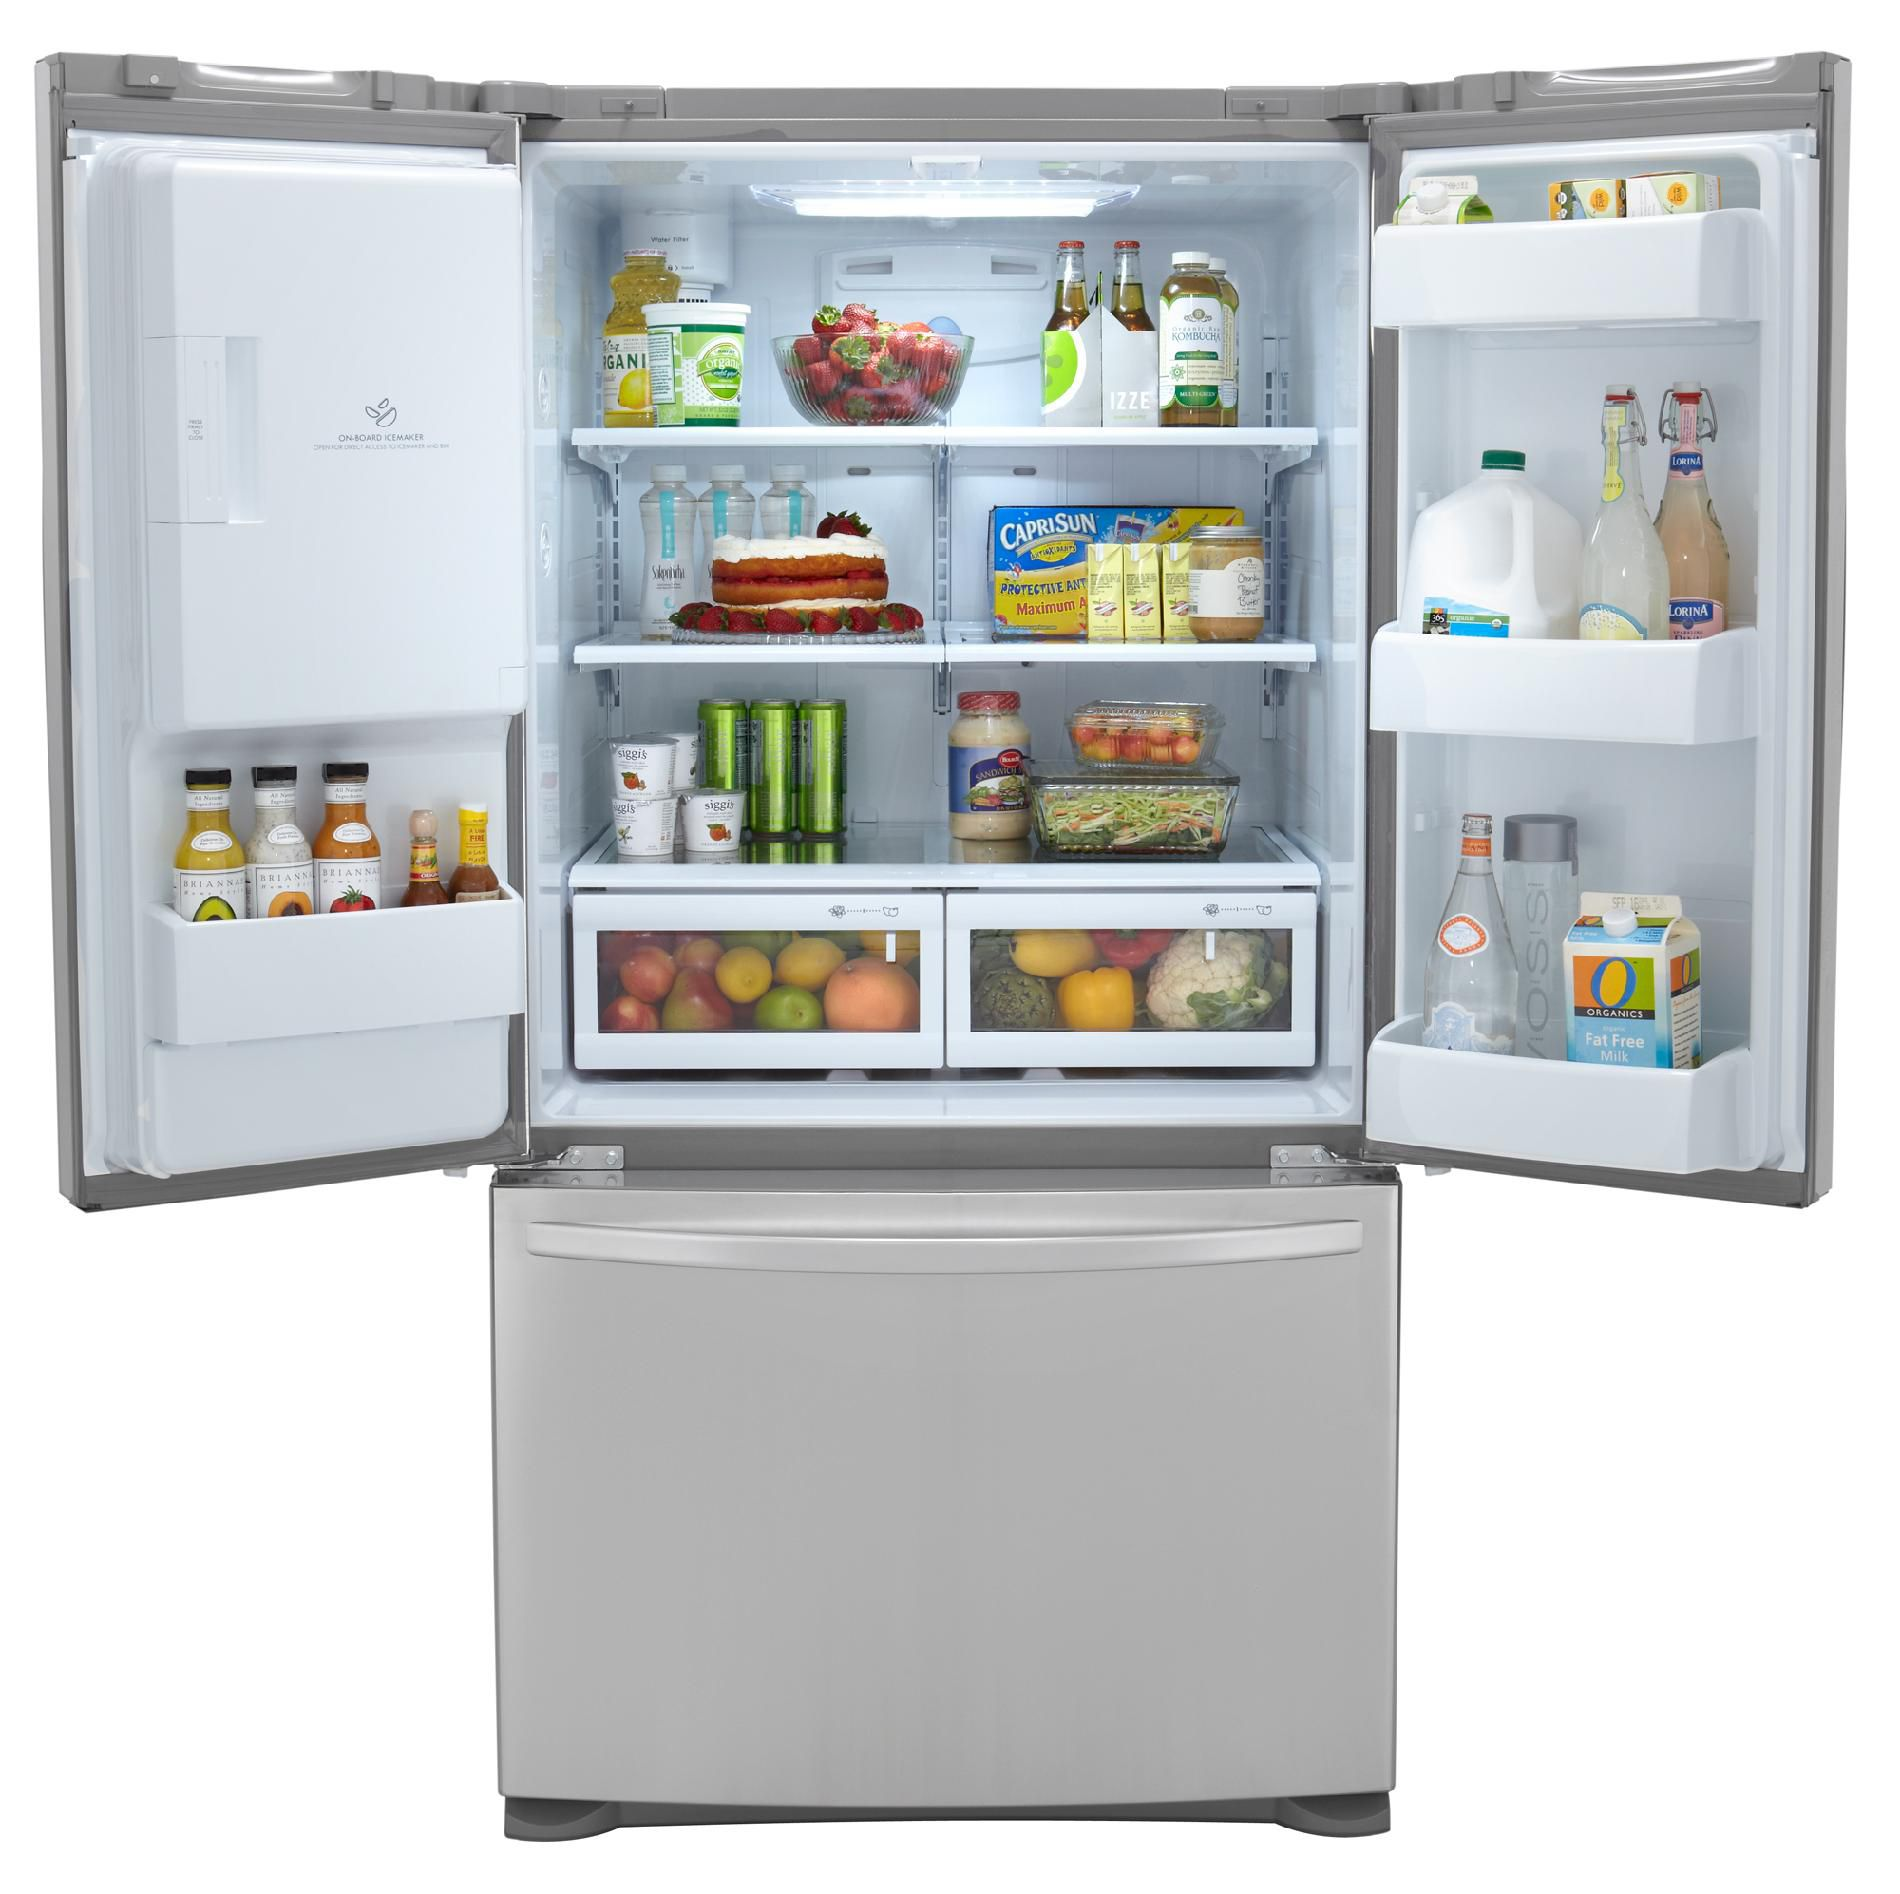 Kenmore 24.7 cu. ft. French-Door Bottom-Freezer, Stainless